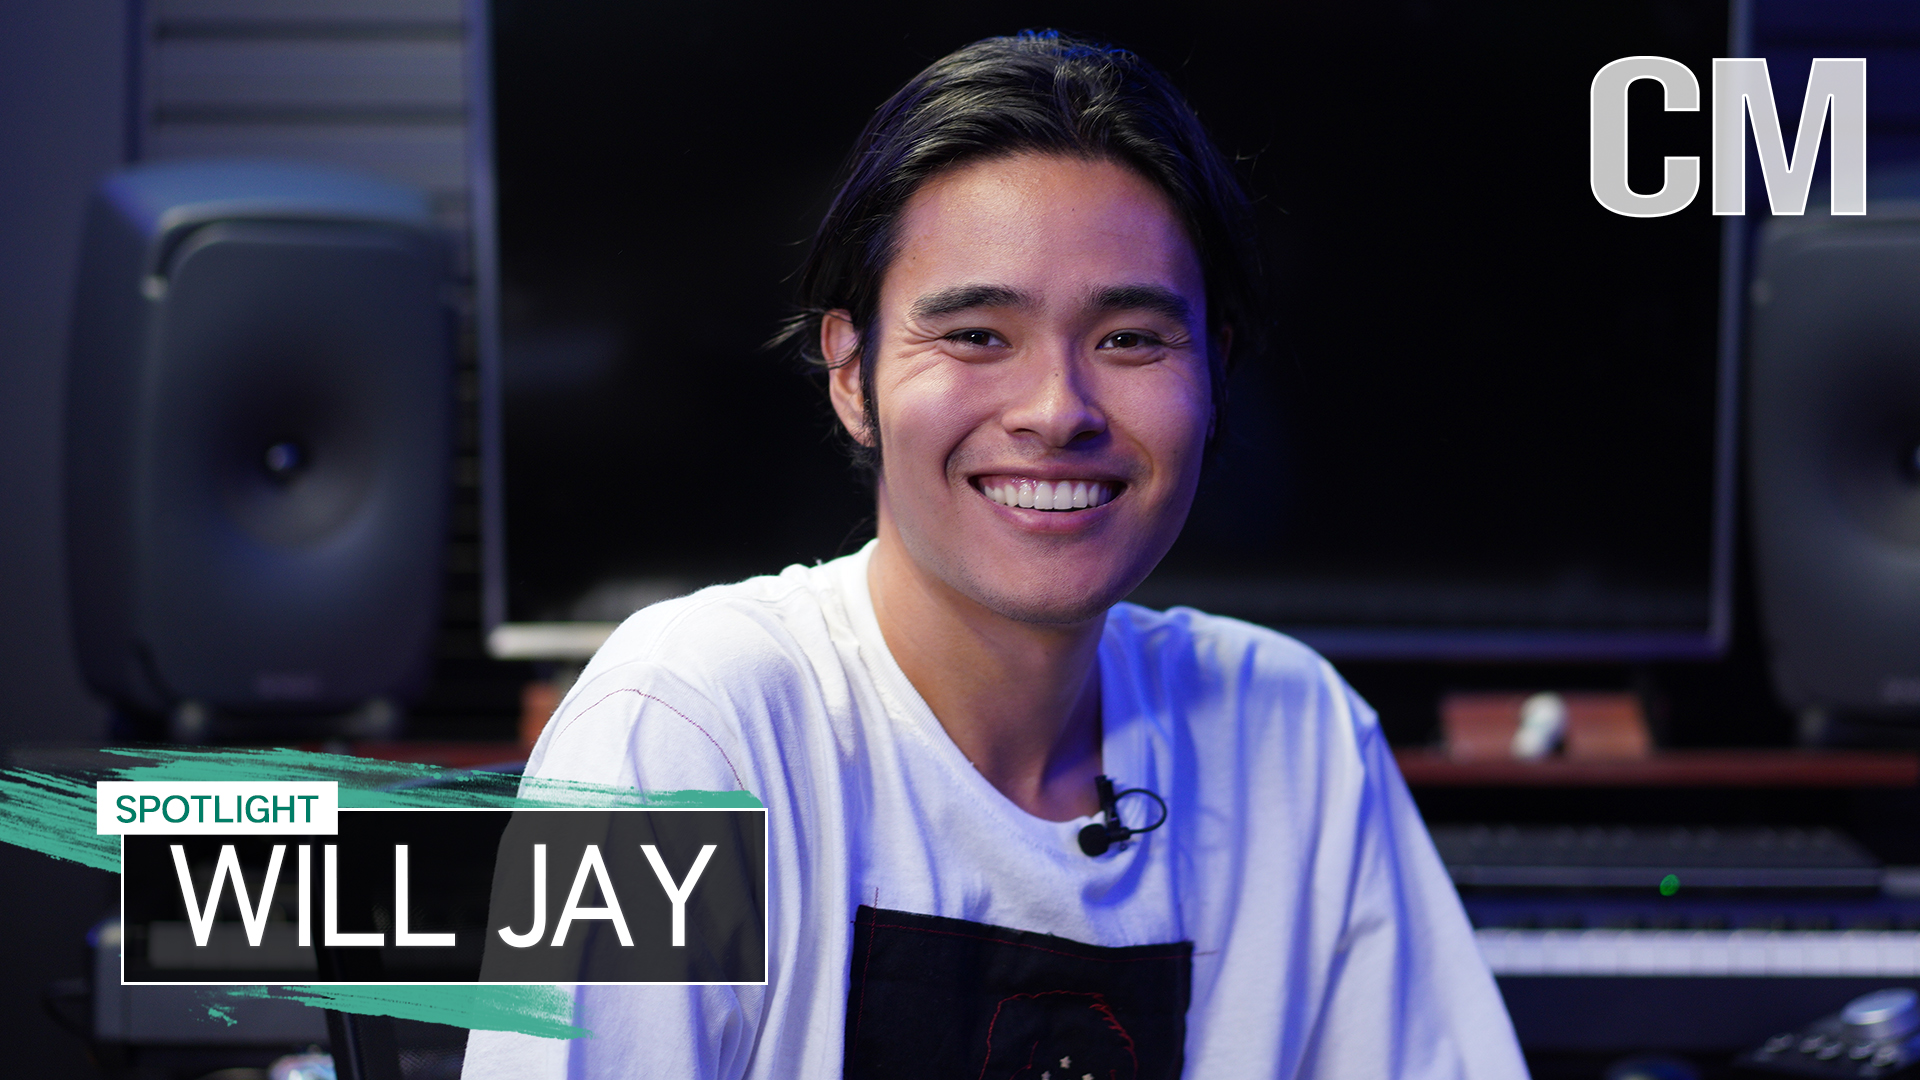 charactermedia.com: Spotlight: Musician Will Jay Gets Personal Through Songwriting